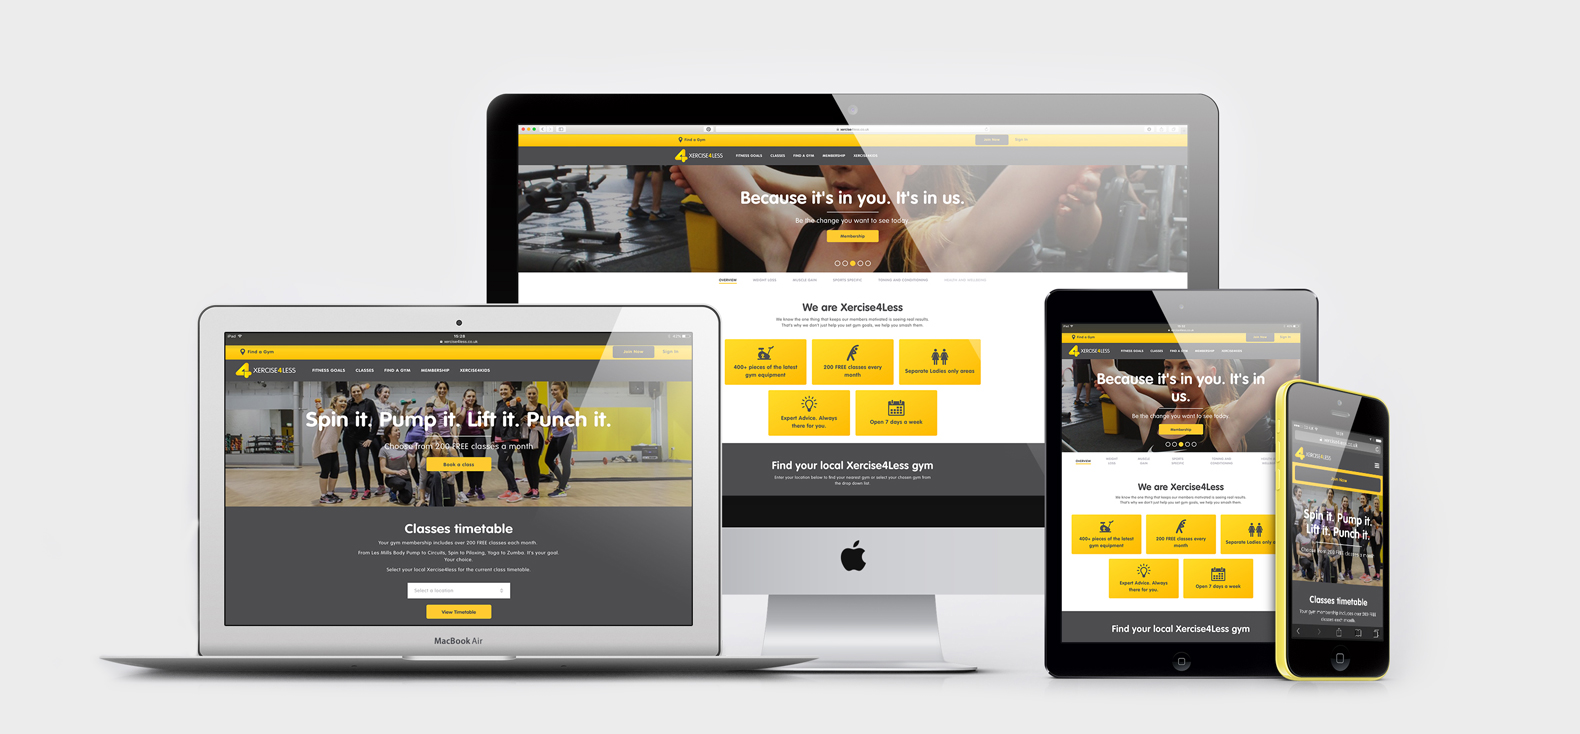 Xercise4less website build - Systems and Platforms